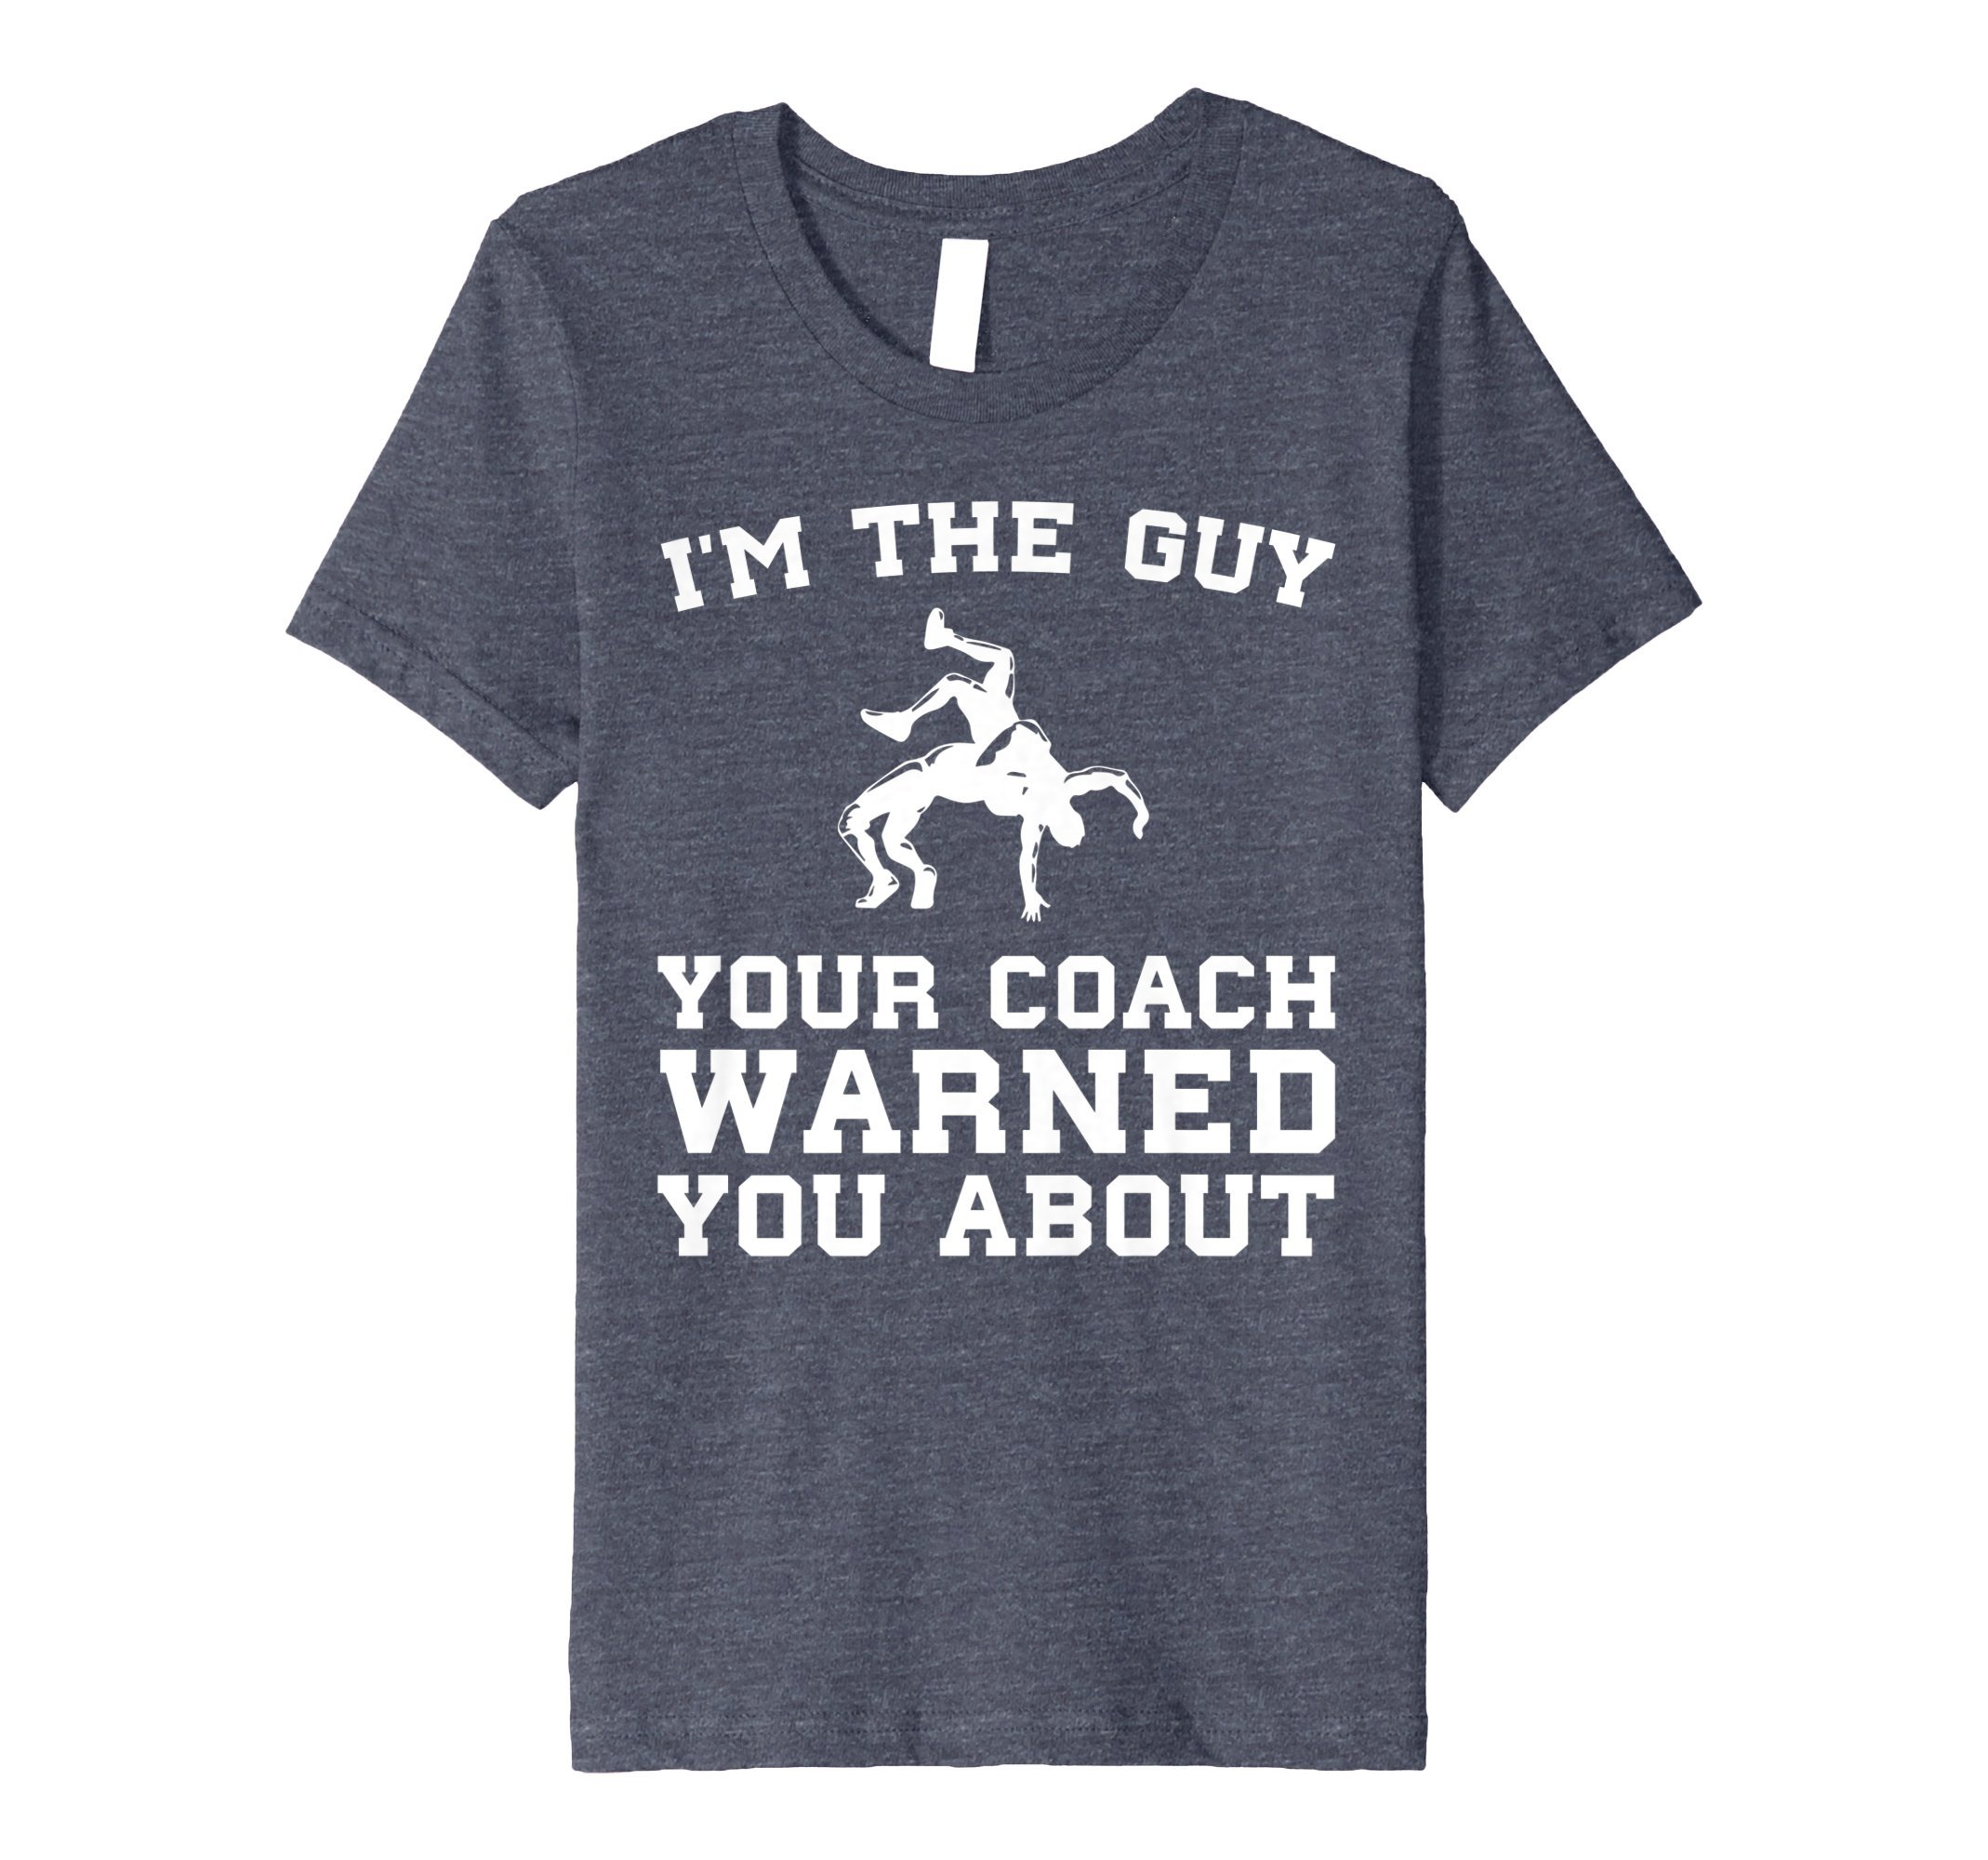 Kids The Guy Your Coach Warned You About Boy's Wrestling T Shirt 8 Heather Blue by Funny Youth Sports Wrestling Shirts